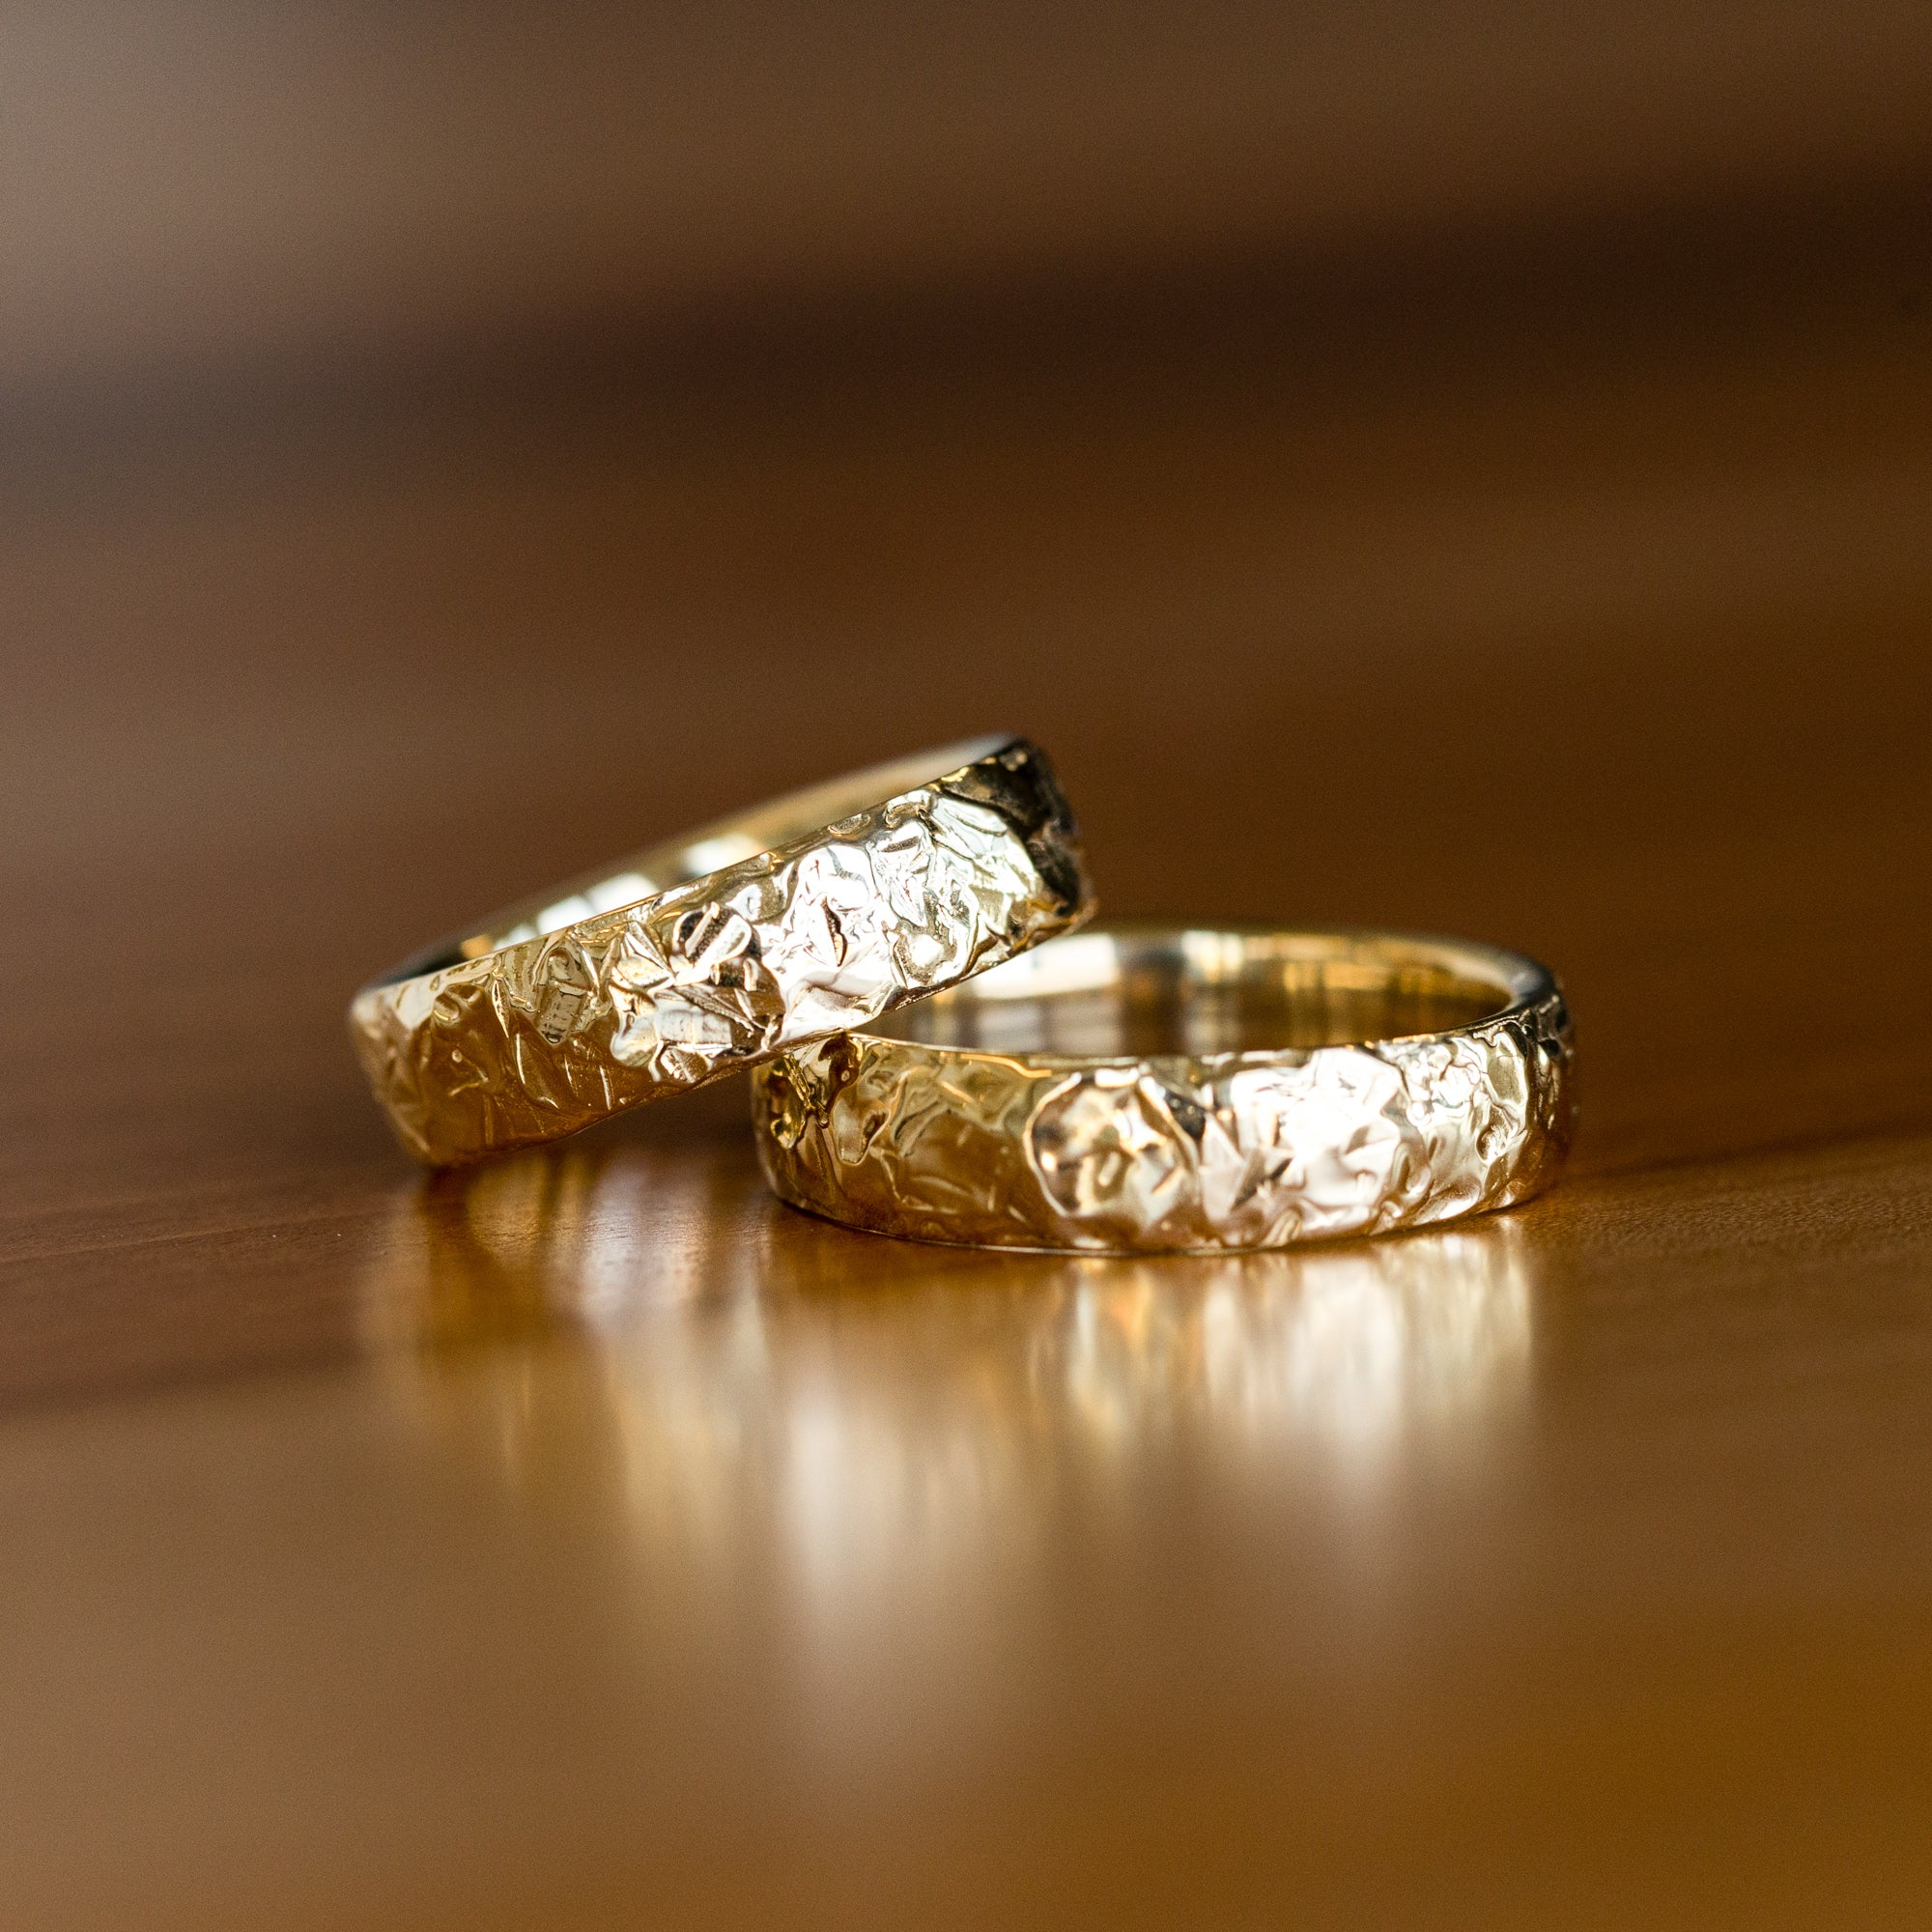 Eco Friendly Ring Titanium Wedding Ring with Reclaimed Gold Inlay Recycled Gold Ring for Men